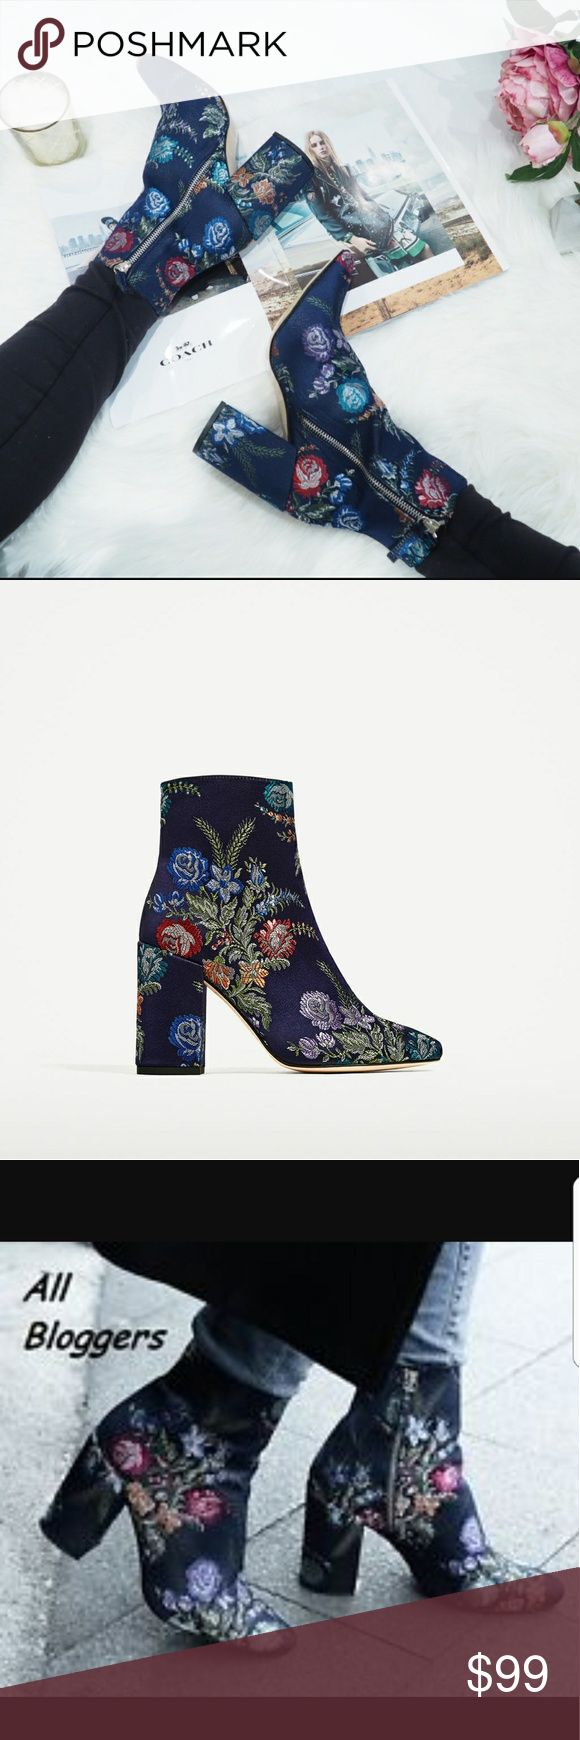 Zara embroidered ankle boots New with tag. EUR 37 US 6.5. Blue high heel ankle boots.   Printed fabric detail. Rounded toe.   Side zip closure. Block heel.   Upper: 100% Polyester   Lining: 80% Polyurethane, 20% Polyester   Sole:100% Vulcanized Rubber   SLIPSOLE  : 100% goat leather   SIZE  EUR   37 / US 6.5 / UK 4   Colour : Blue/Floral Zara Shoes Ankle Boots & Booties